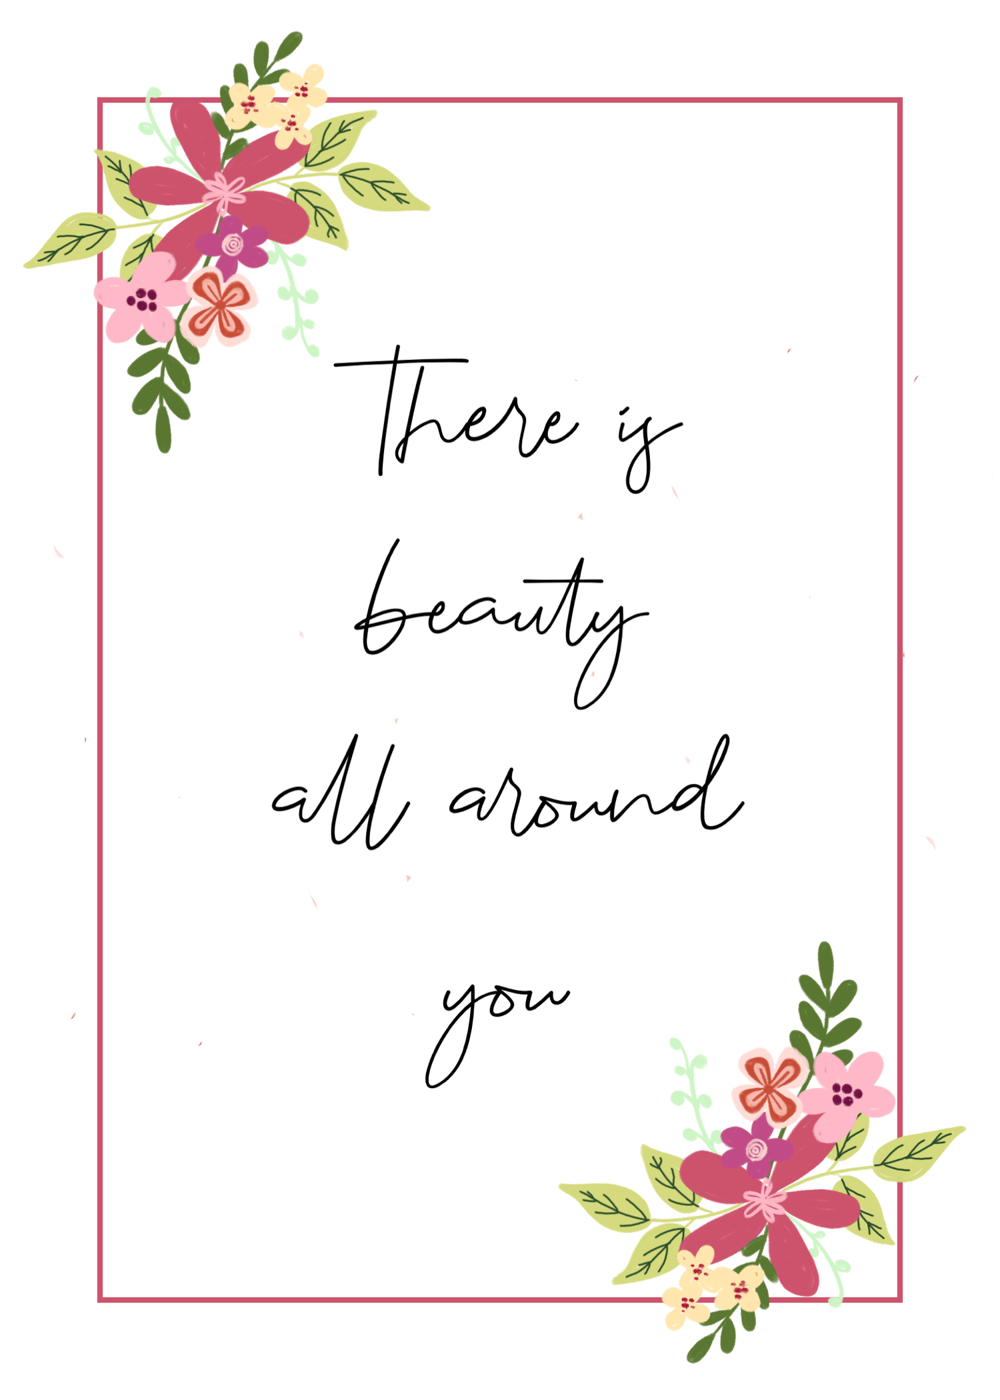 Quote with gouache flowers and border - image 1 - student project